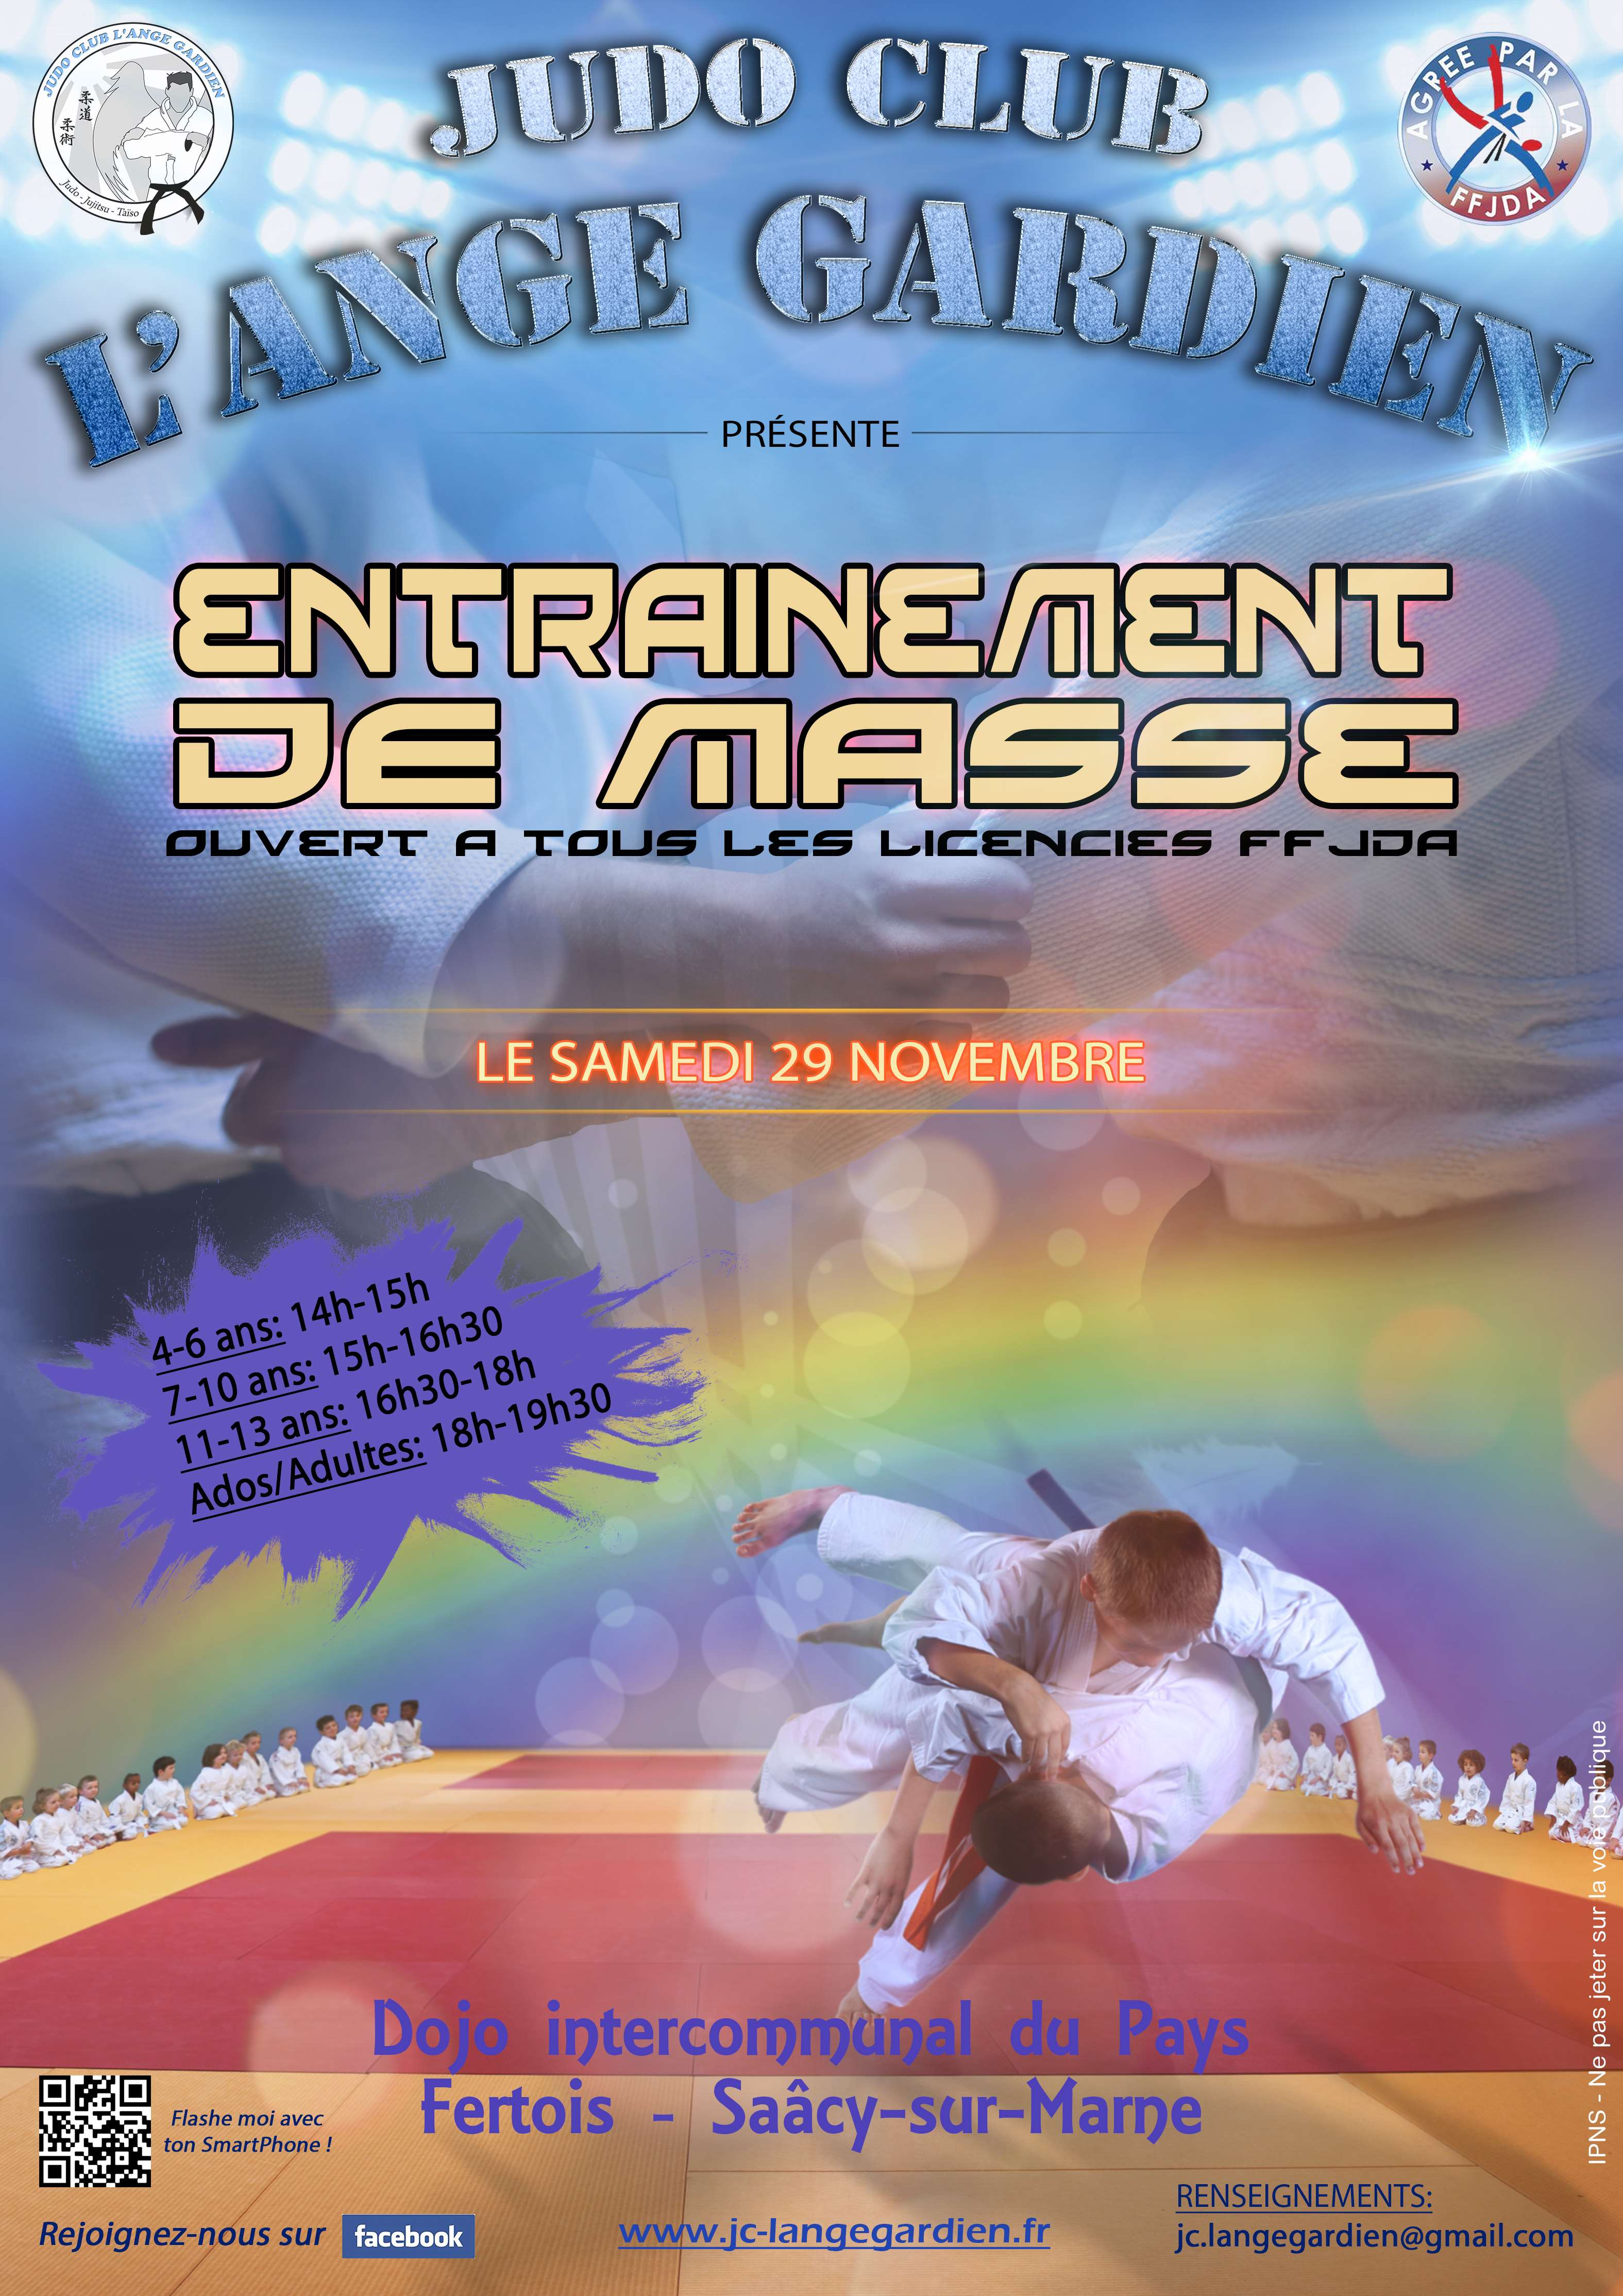 2 evenements samedi 29 novembre 2014 judo club l 39 ange gardien. Black Bedroom Furniture Sets. Home Design Ideas